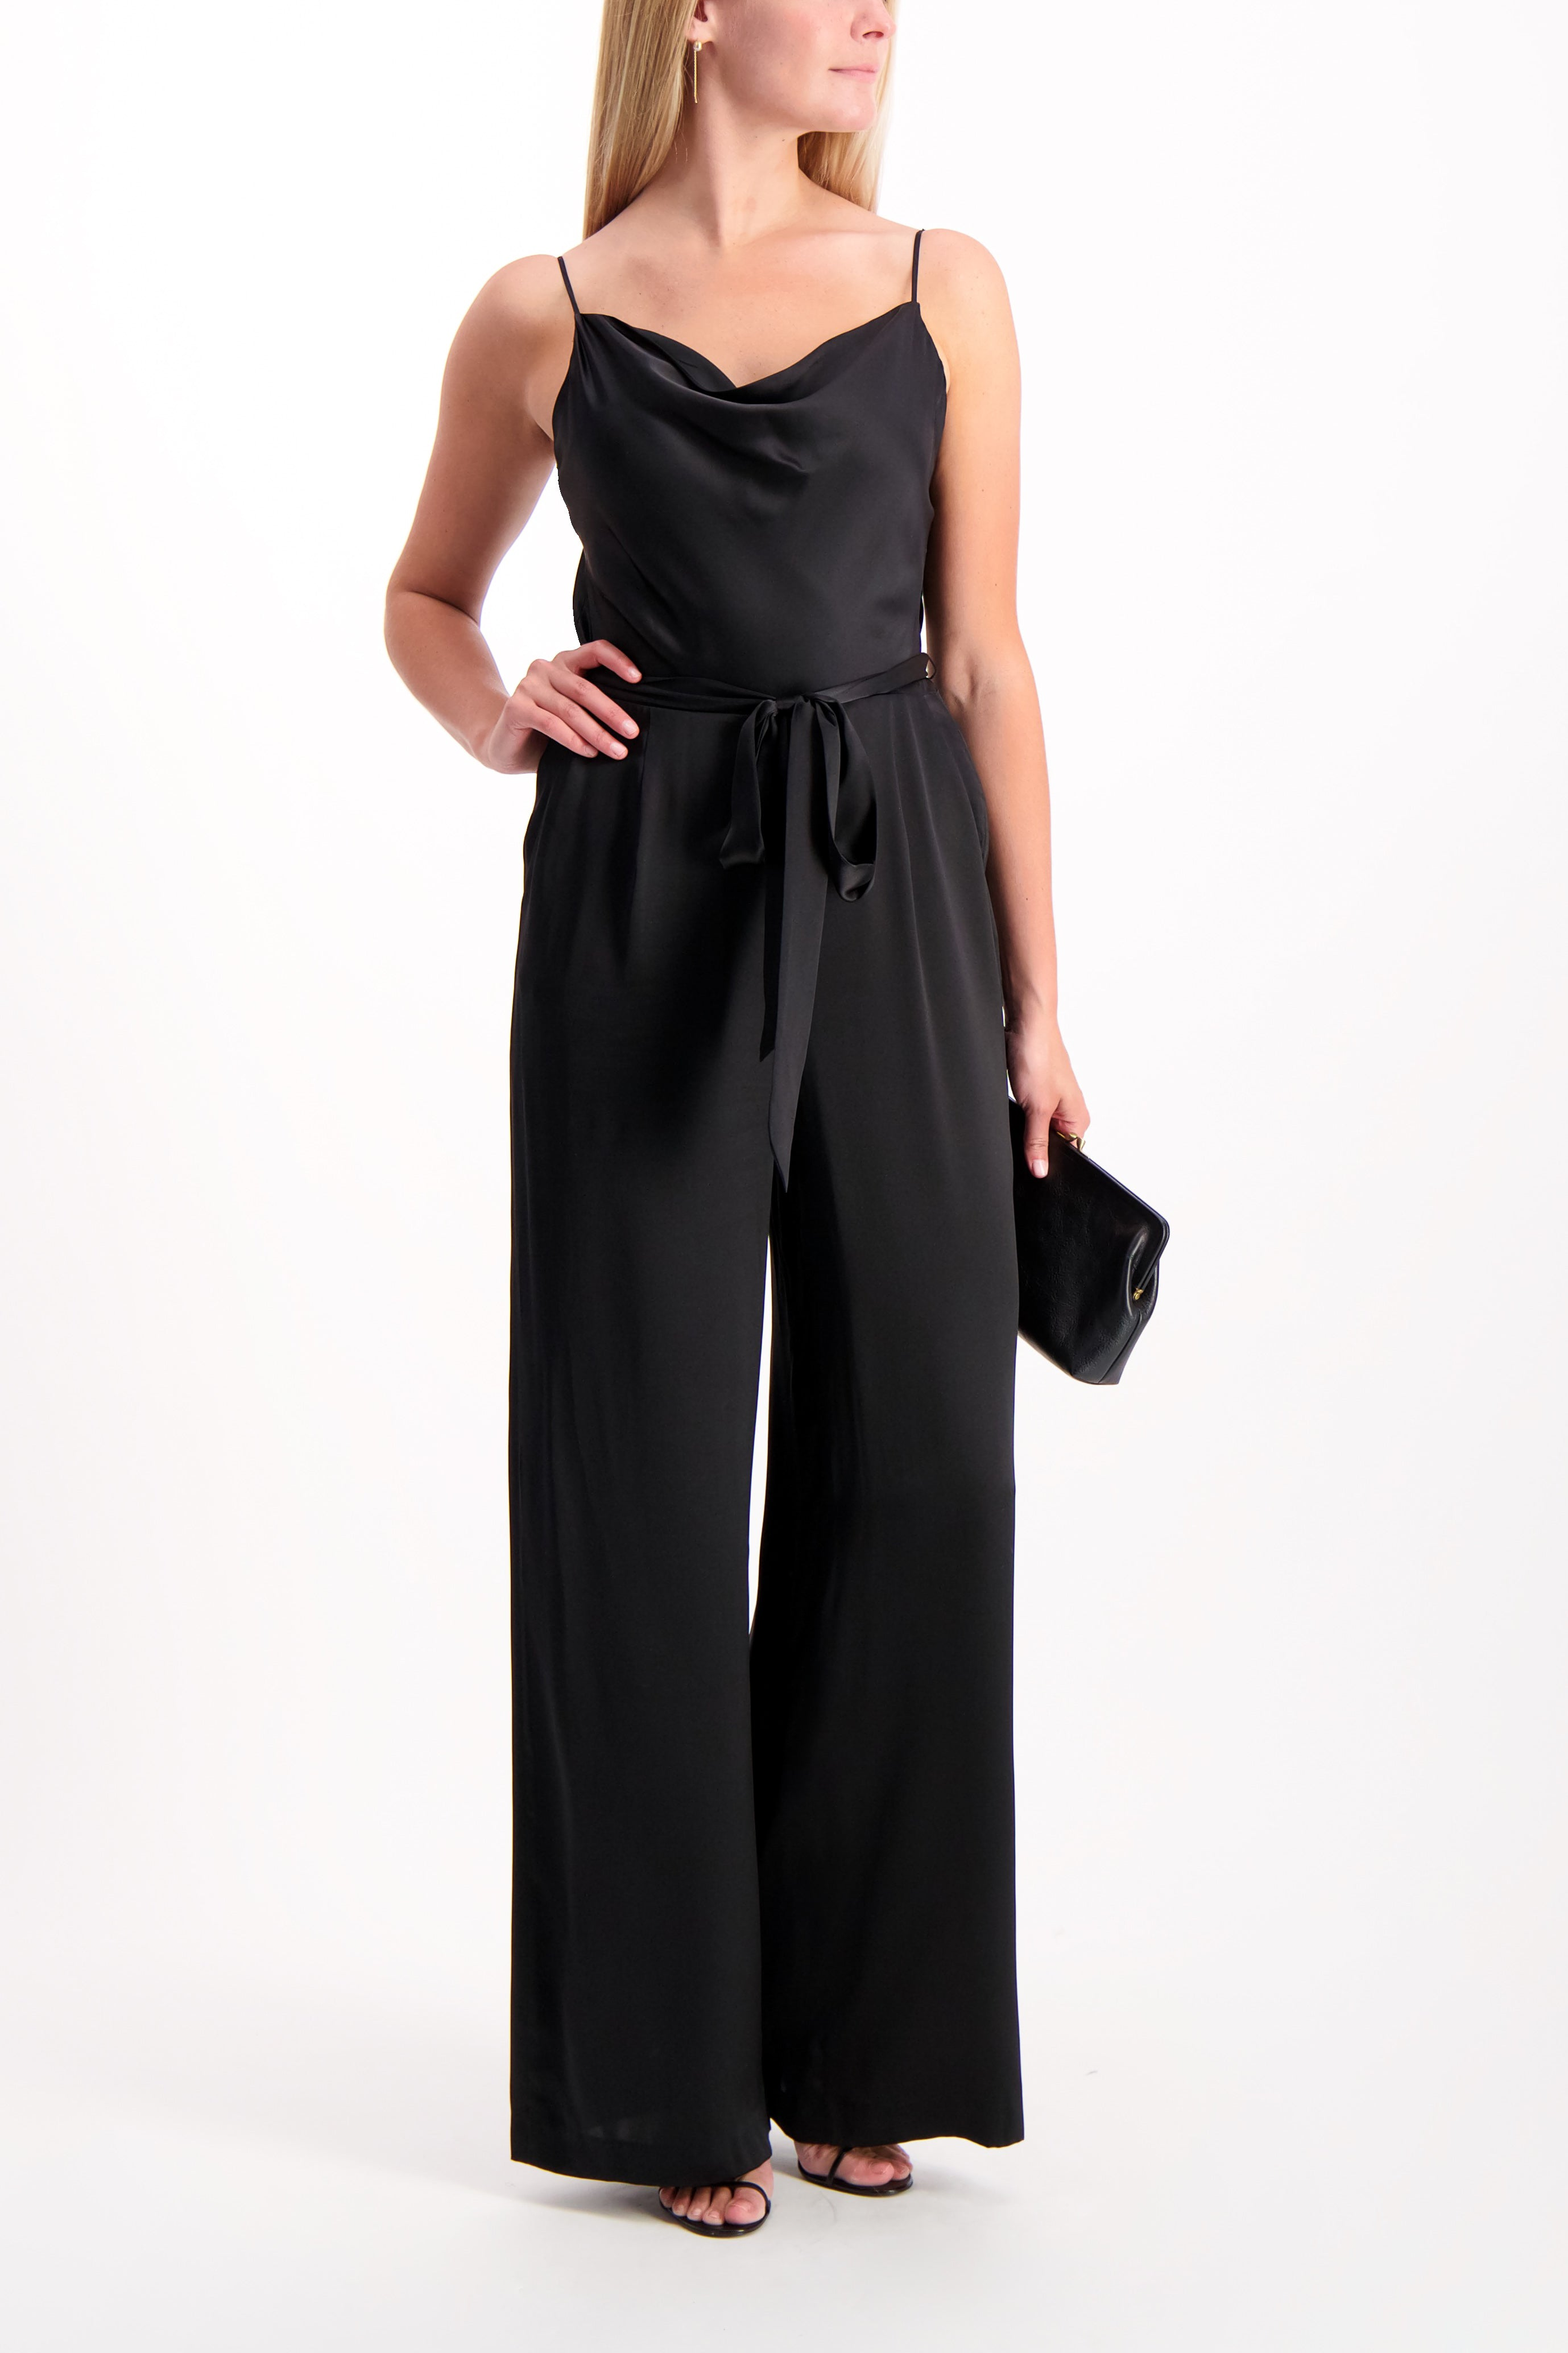 Full Body Image Of Model Wearing Rannah Cowl Jumpsuit